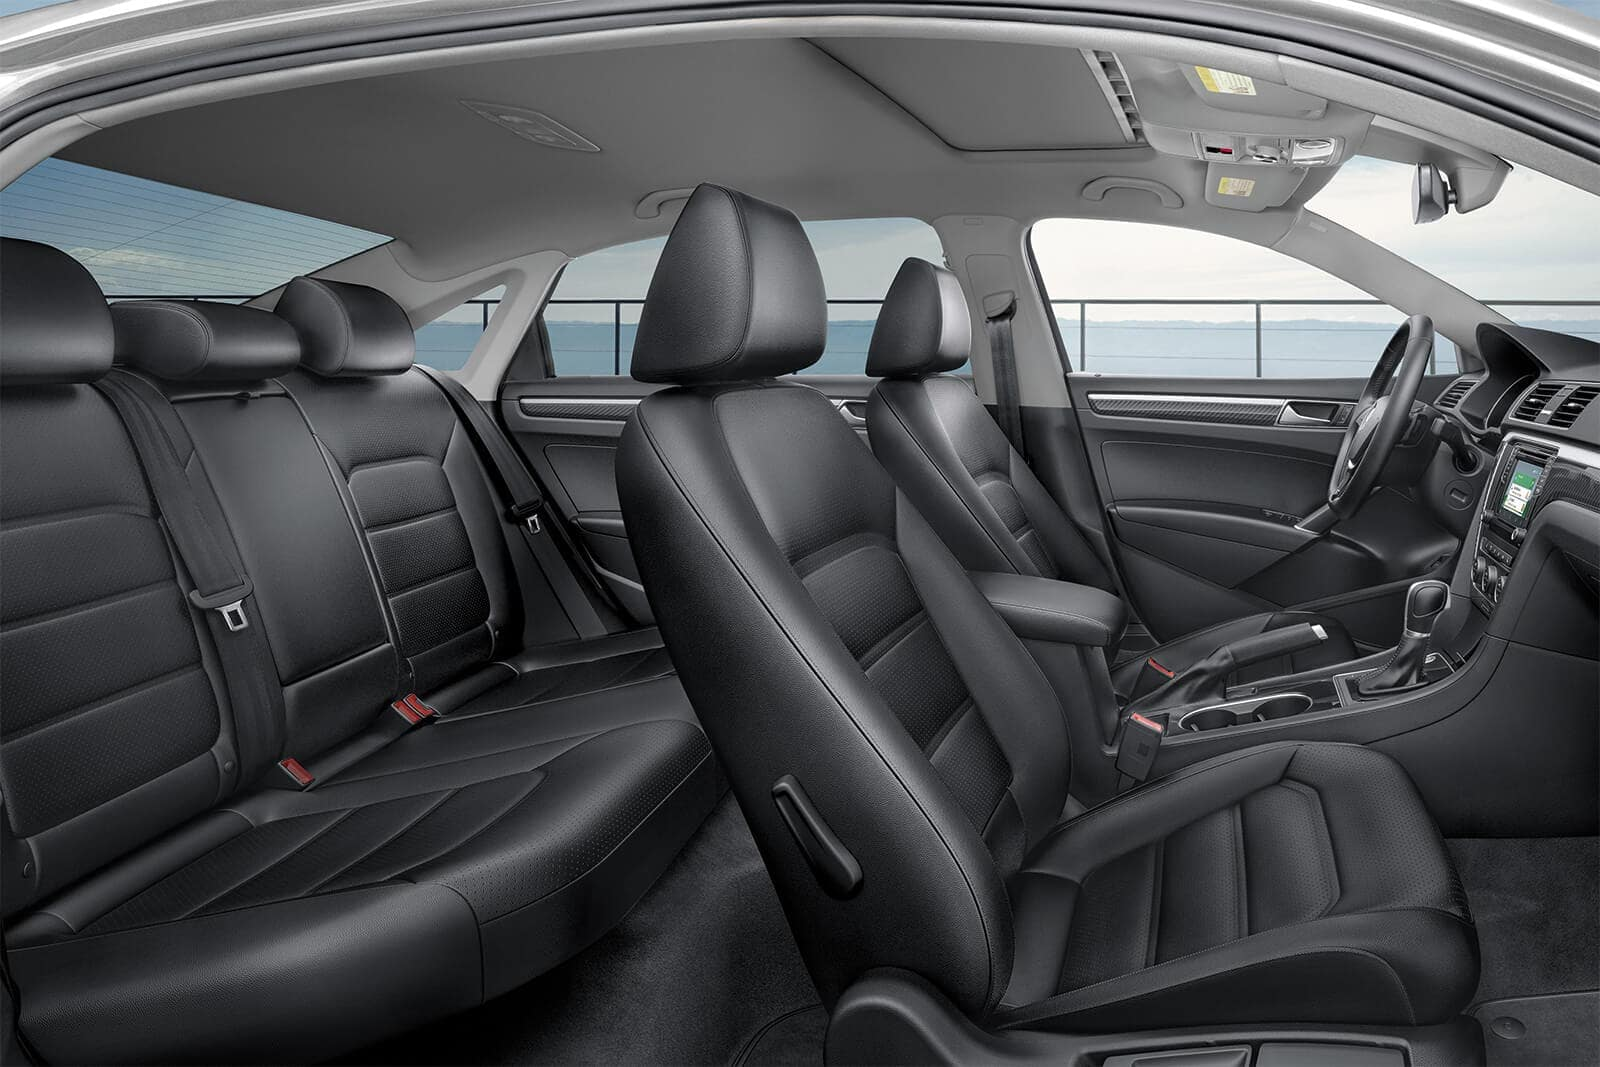 2019 Volkswagen Passat interior in black leather